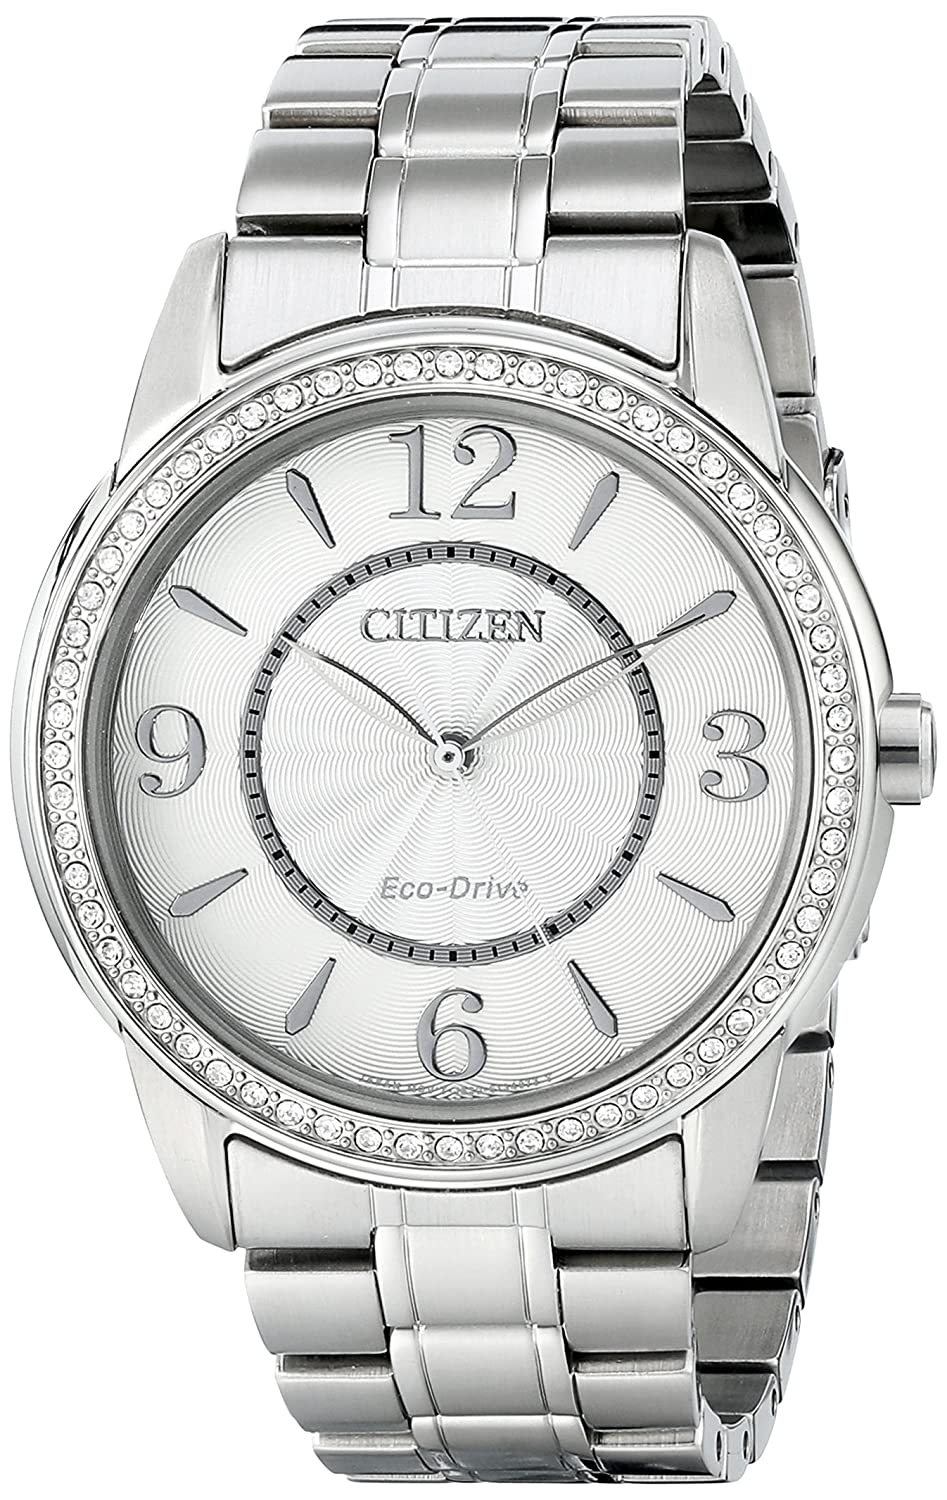 Citizen Women s FE7000-58A Drive from Citizen Eco-Drive TTG Analog Display Silver Watch